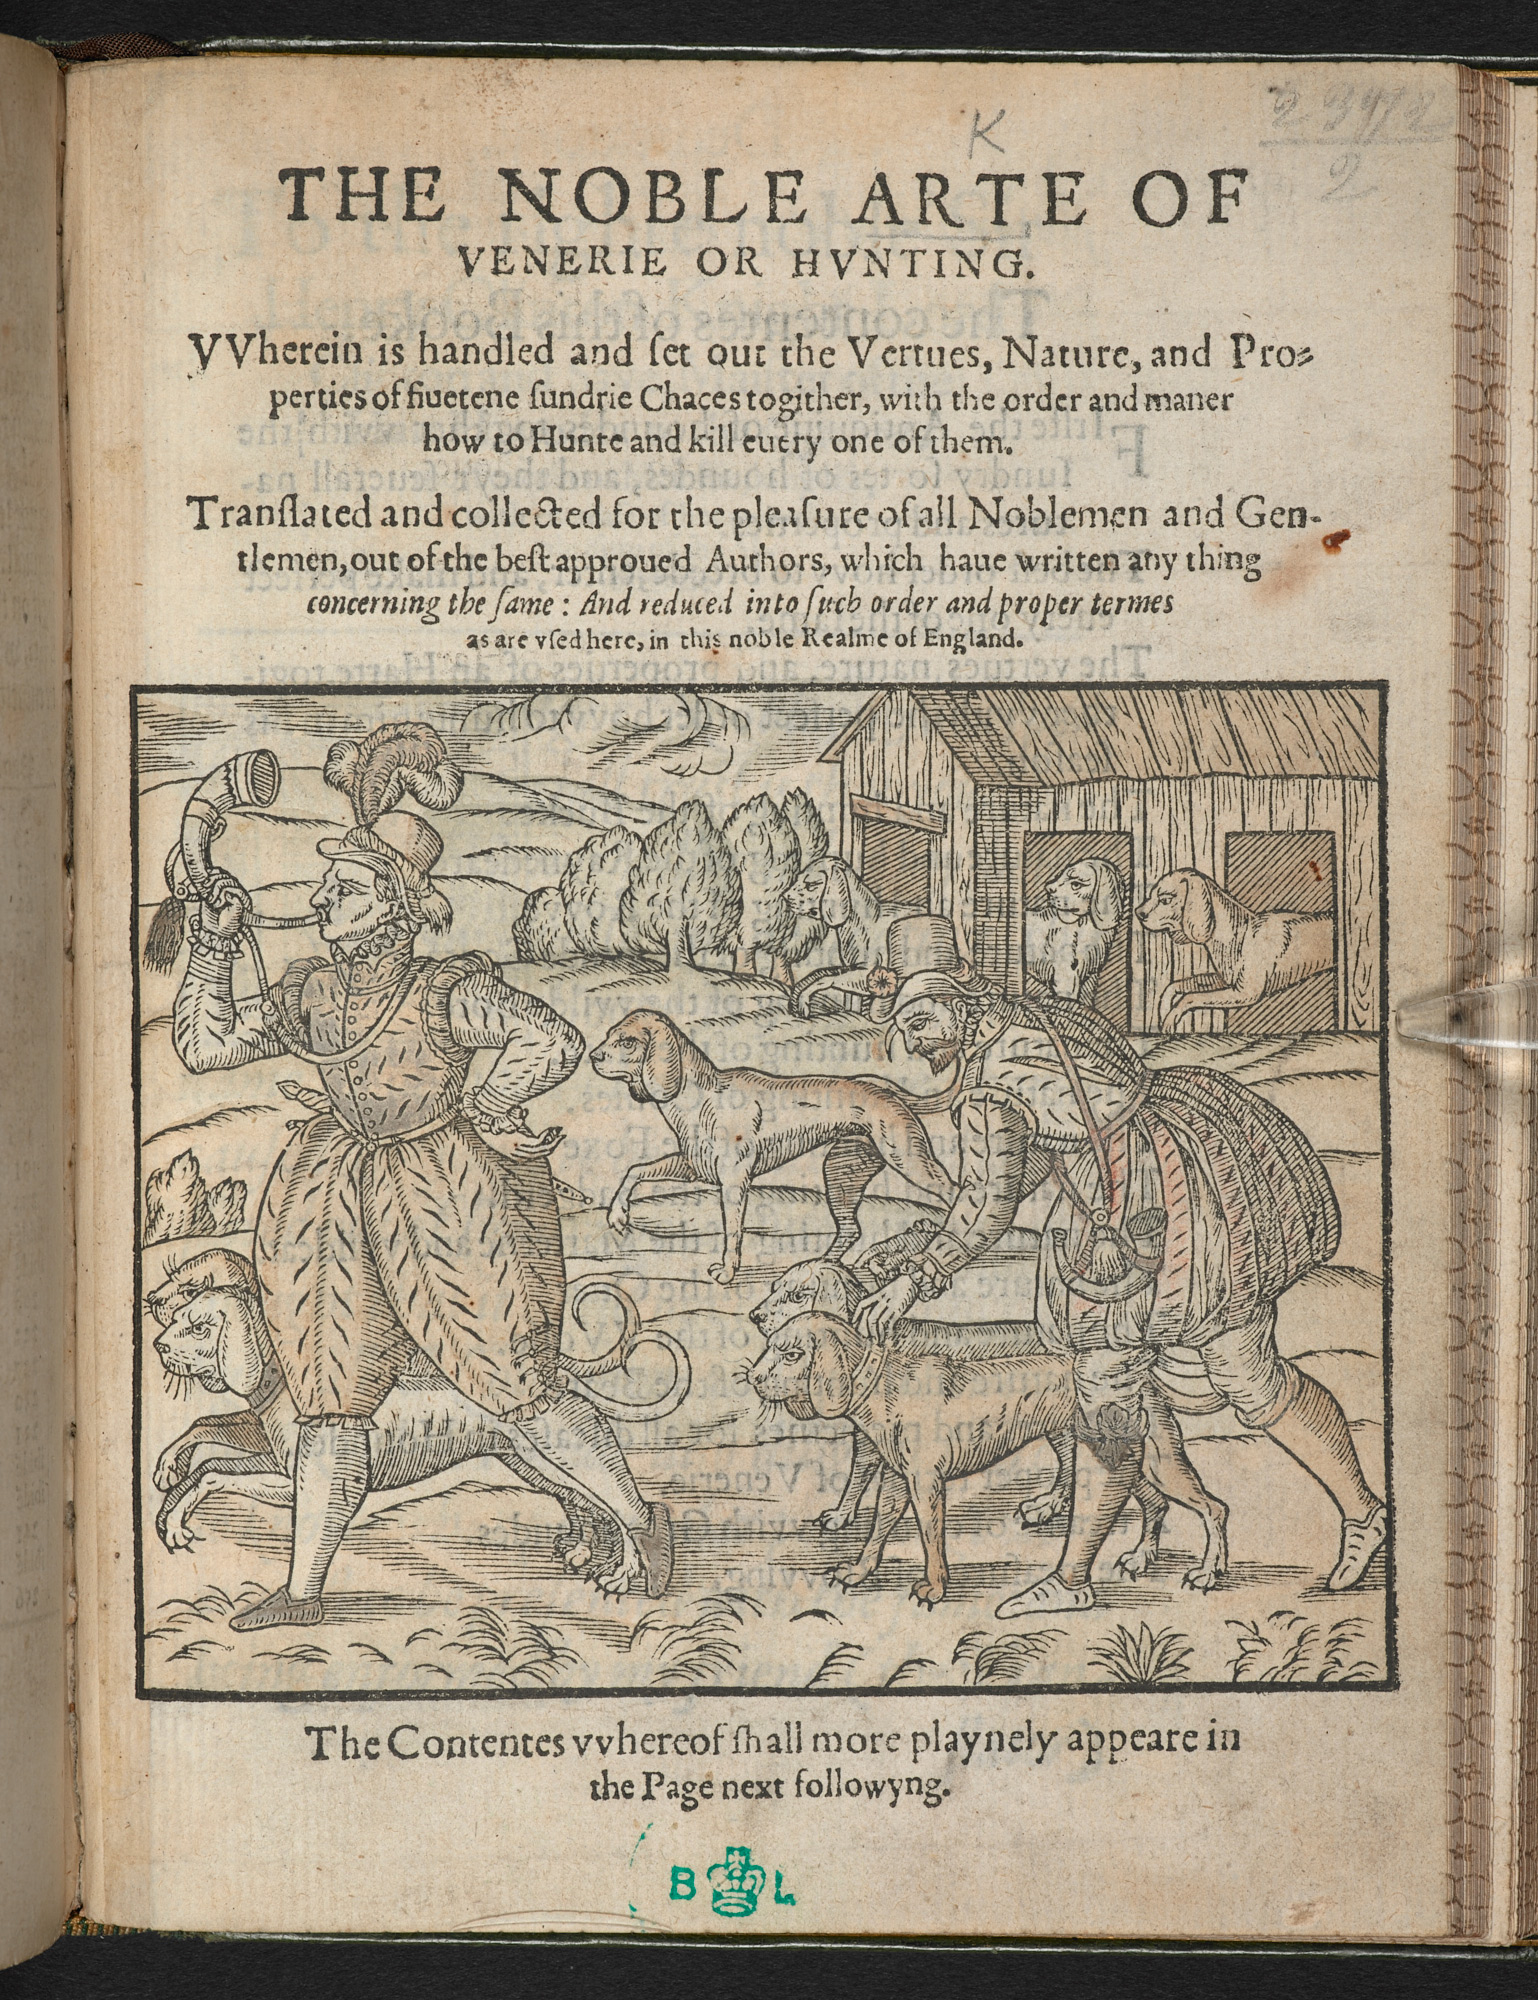 Power and gender in The Taming of the Shrew - The British Library